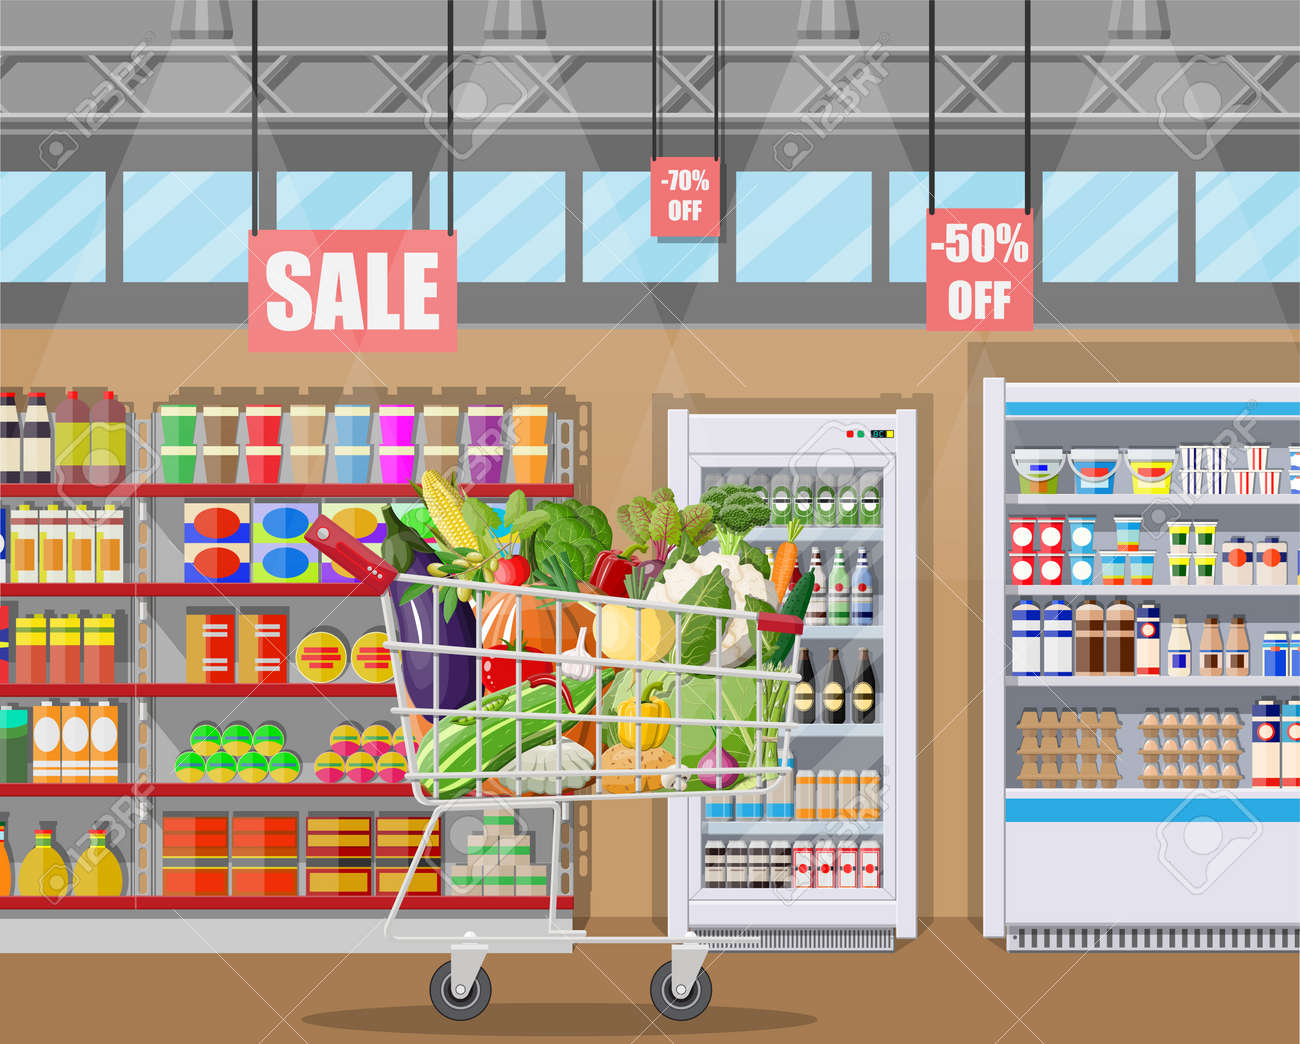 Supermarket store interior with vegetables in shopping cart. Big shopping mall. Interior store inside. Checkout counter, grocery, drinks, food, dairy products. Vector illustration in flat style - 110160593